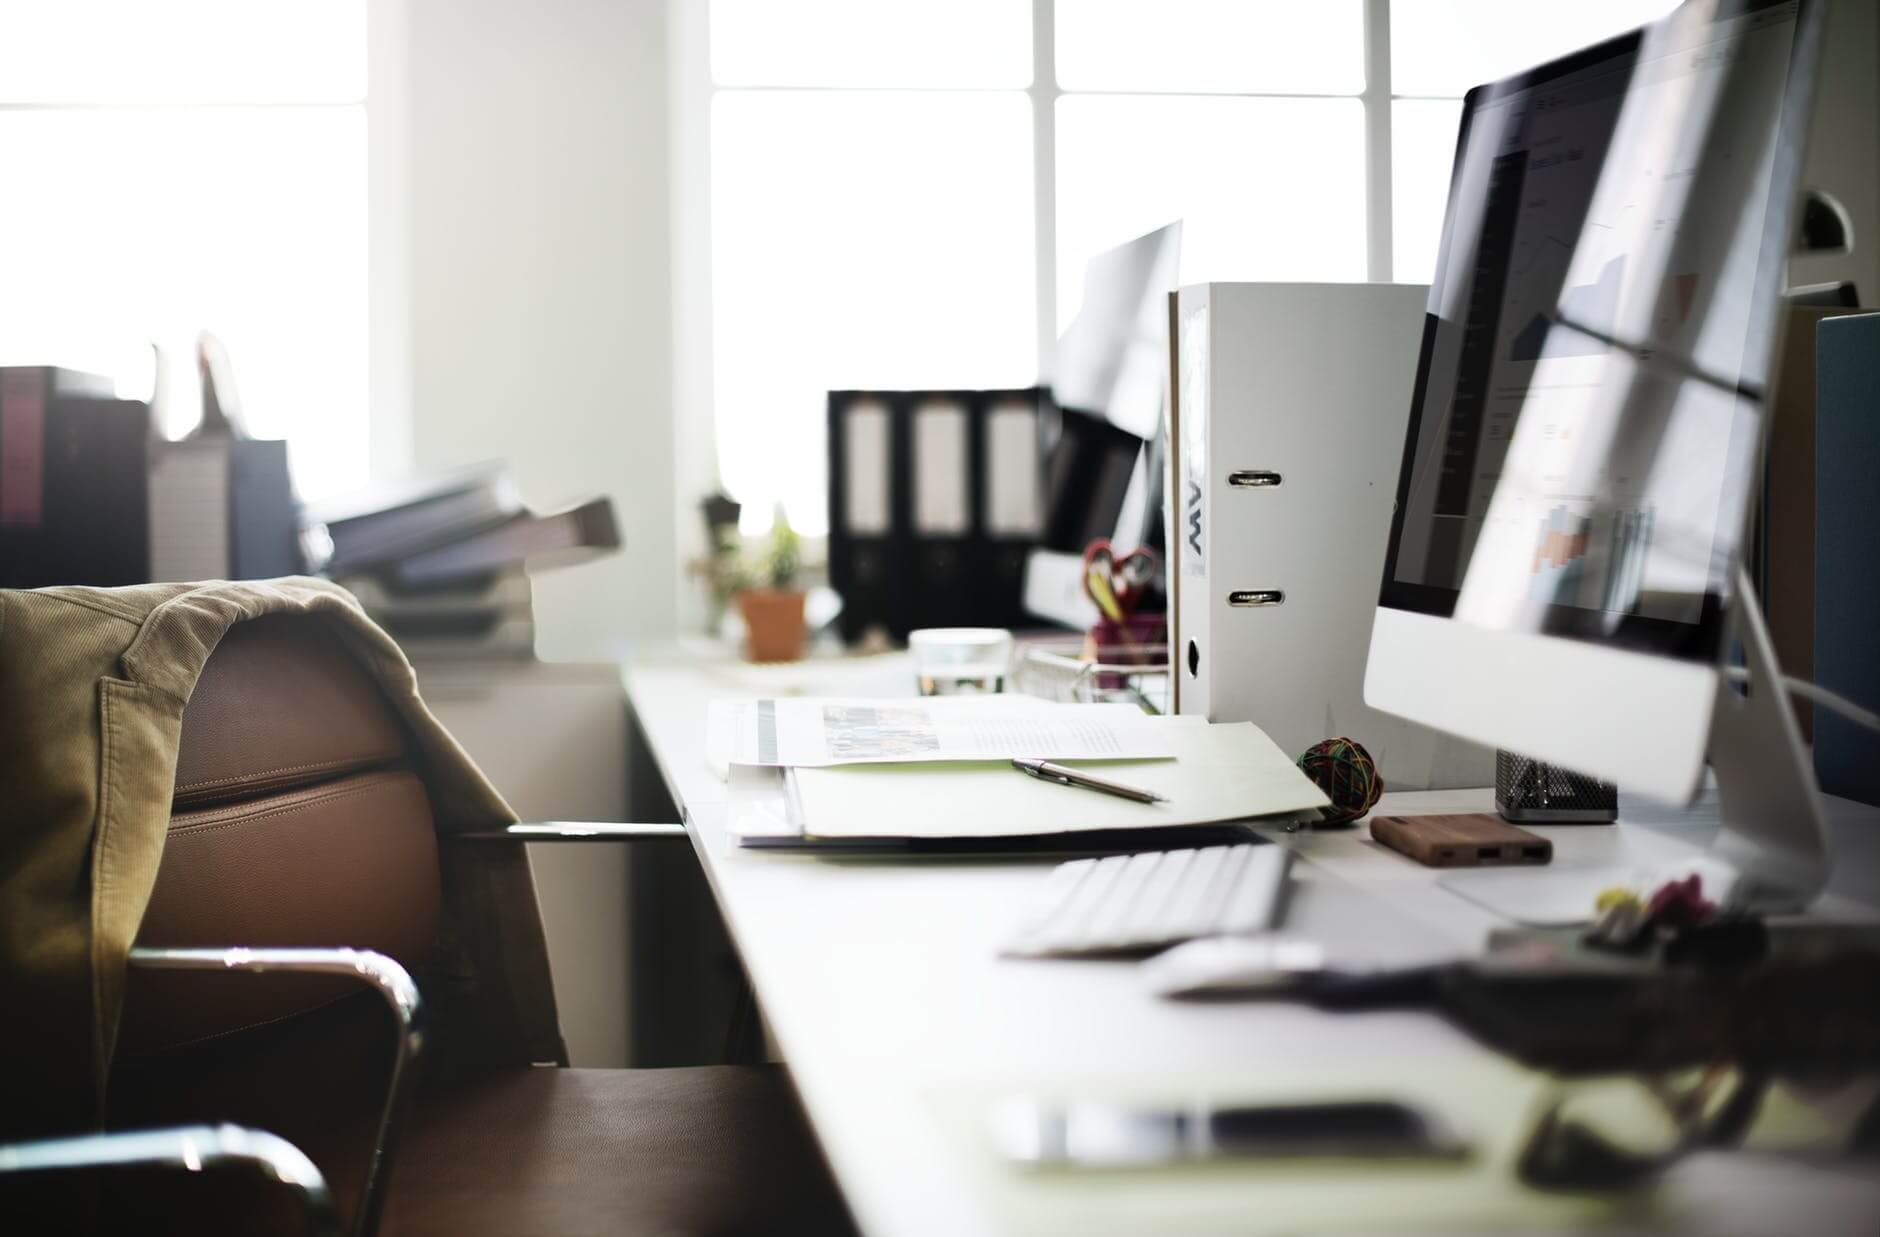 Personal comfort in workspace and change management